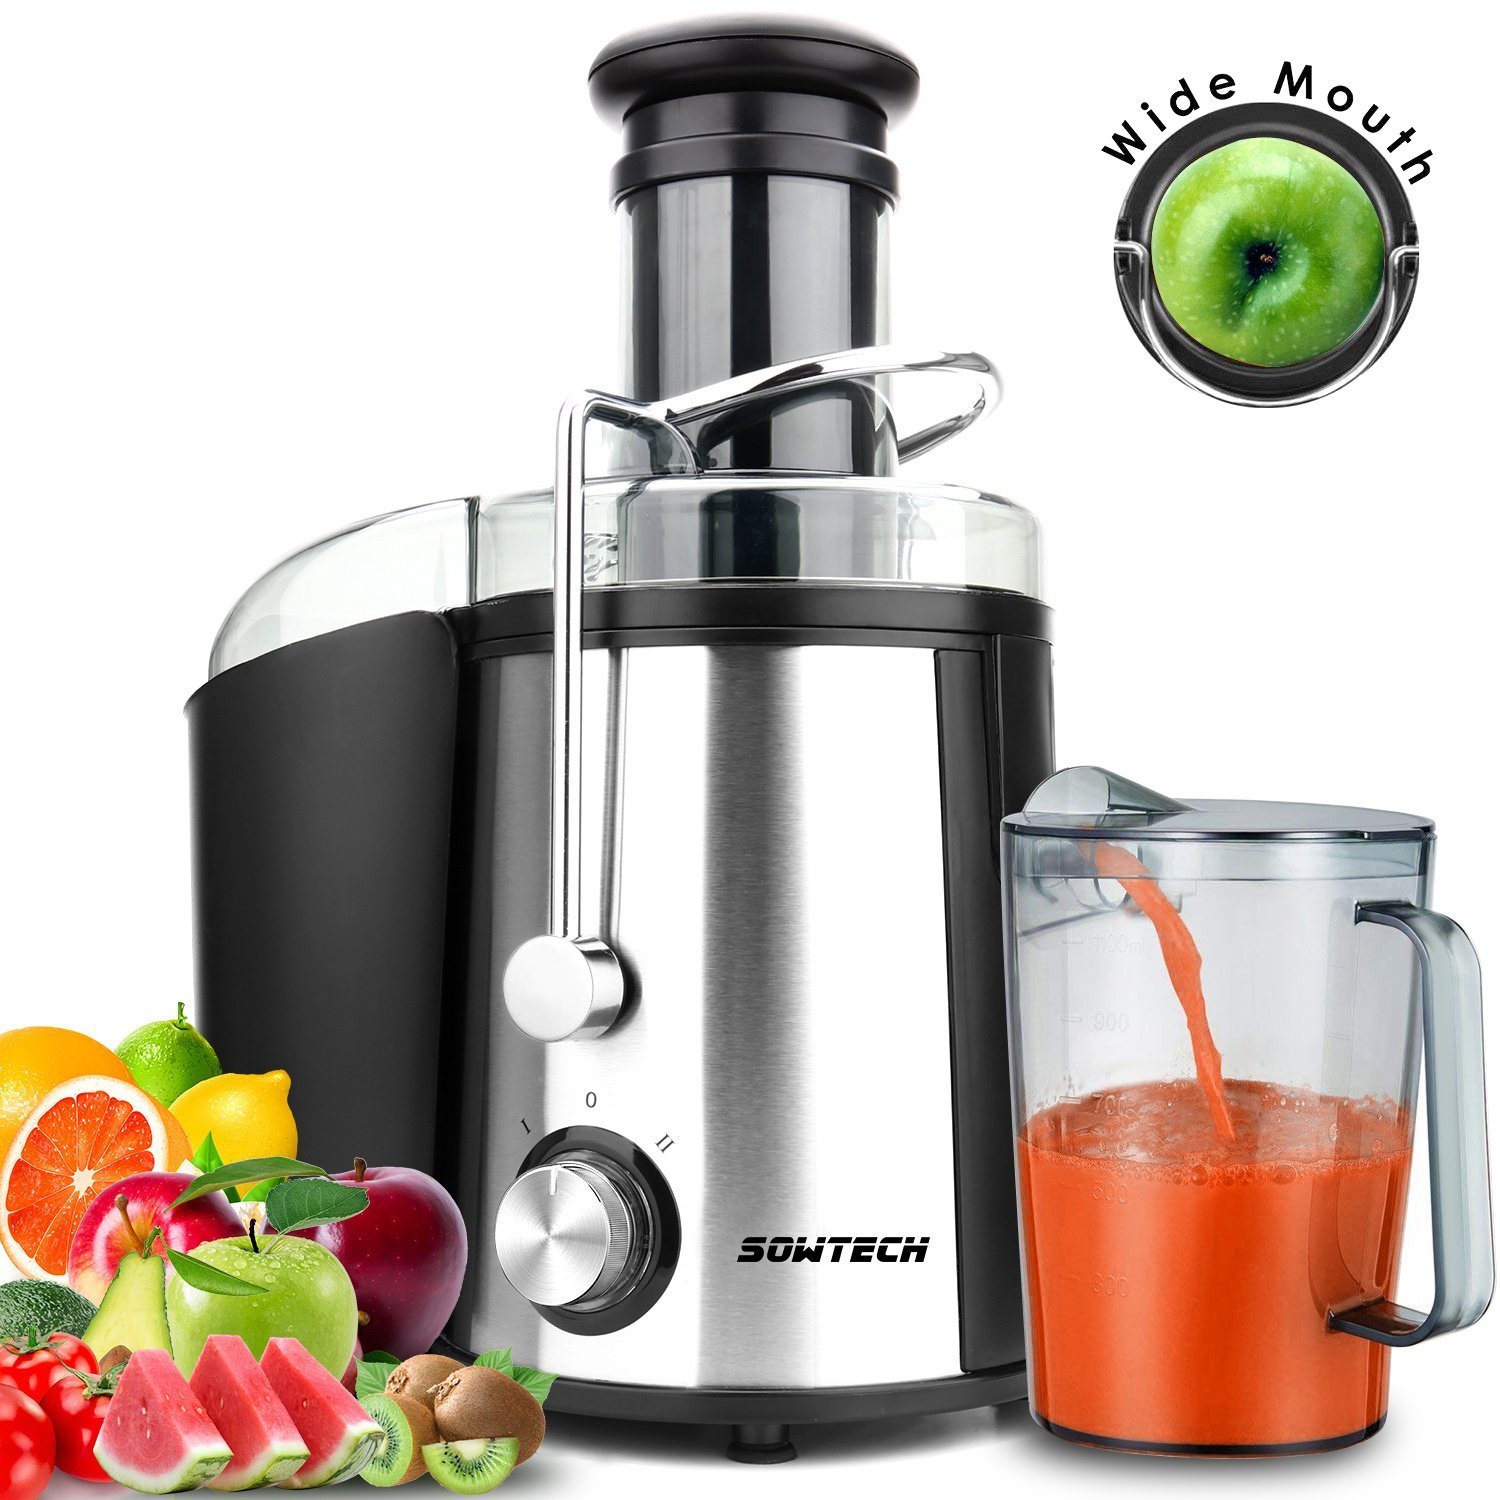 Juice Extractor, SOWTECH 800W Stainless Steel Juice Machine Squeezer with 3 inch Wide Mouth Easy Cleaning BPA Free Two Speed Mode Centrifugal Juicer for Fruits and Vegetable ST-HM221